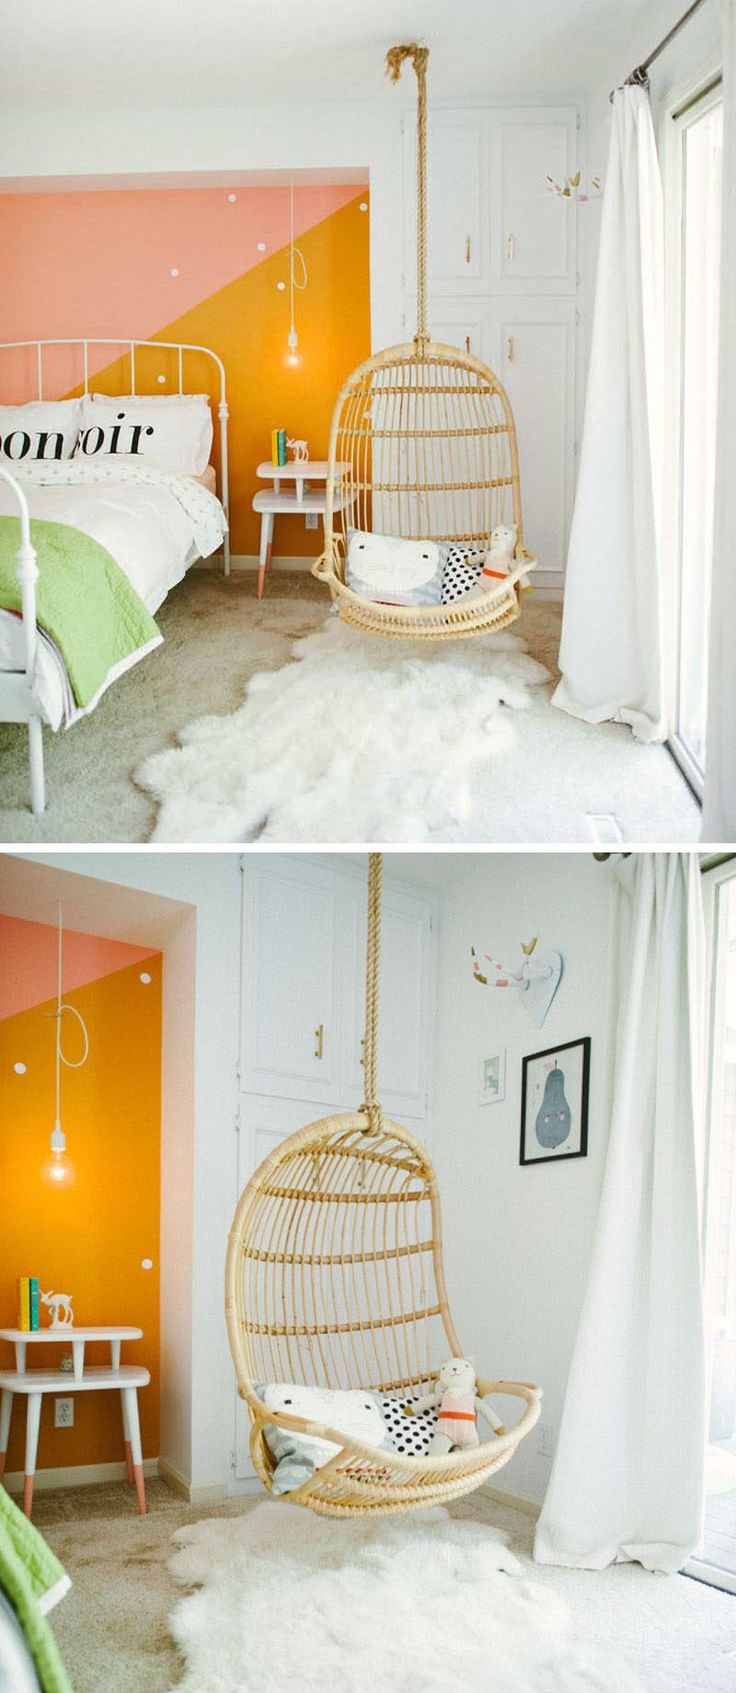 This natural hanging chair is perfect for decorating a tween girls bedroom.